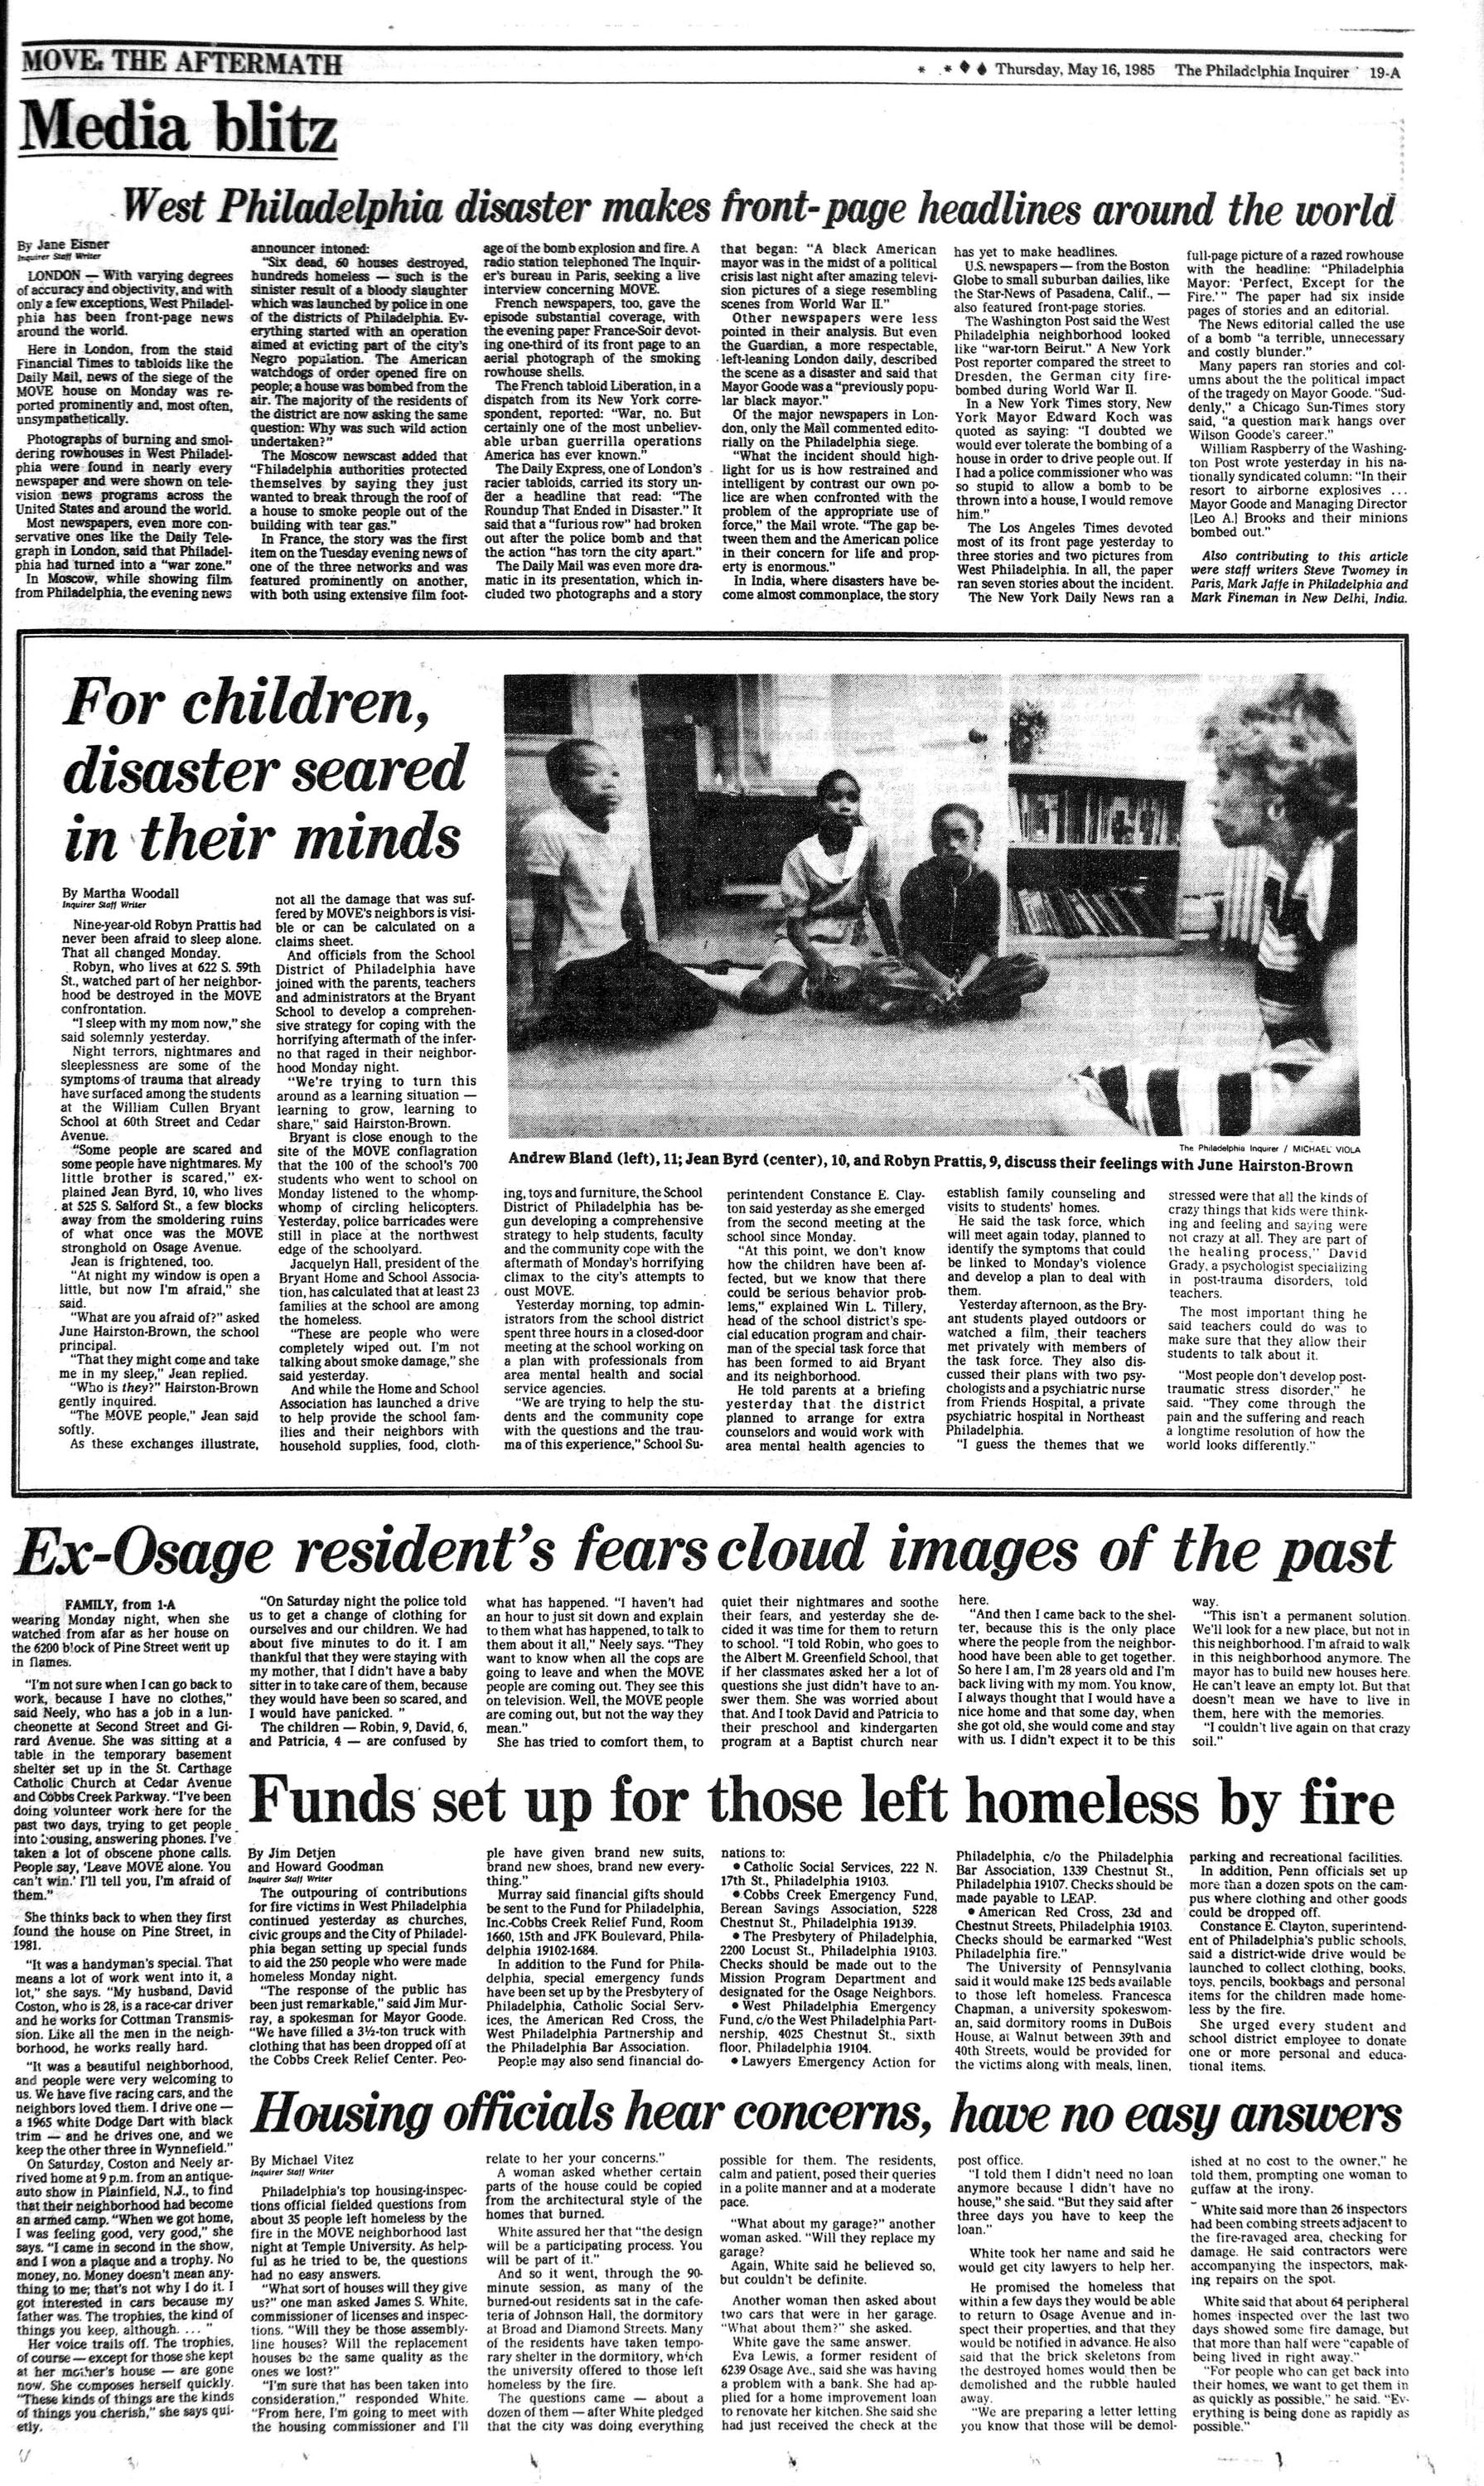 The MOVE Crisis: Inquirer 5/16 coverage | Philly